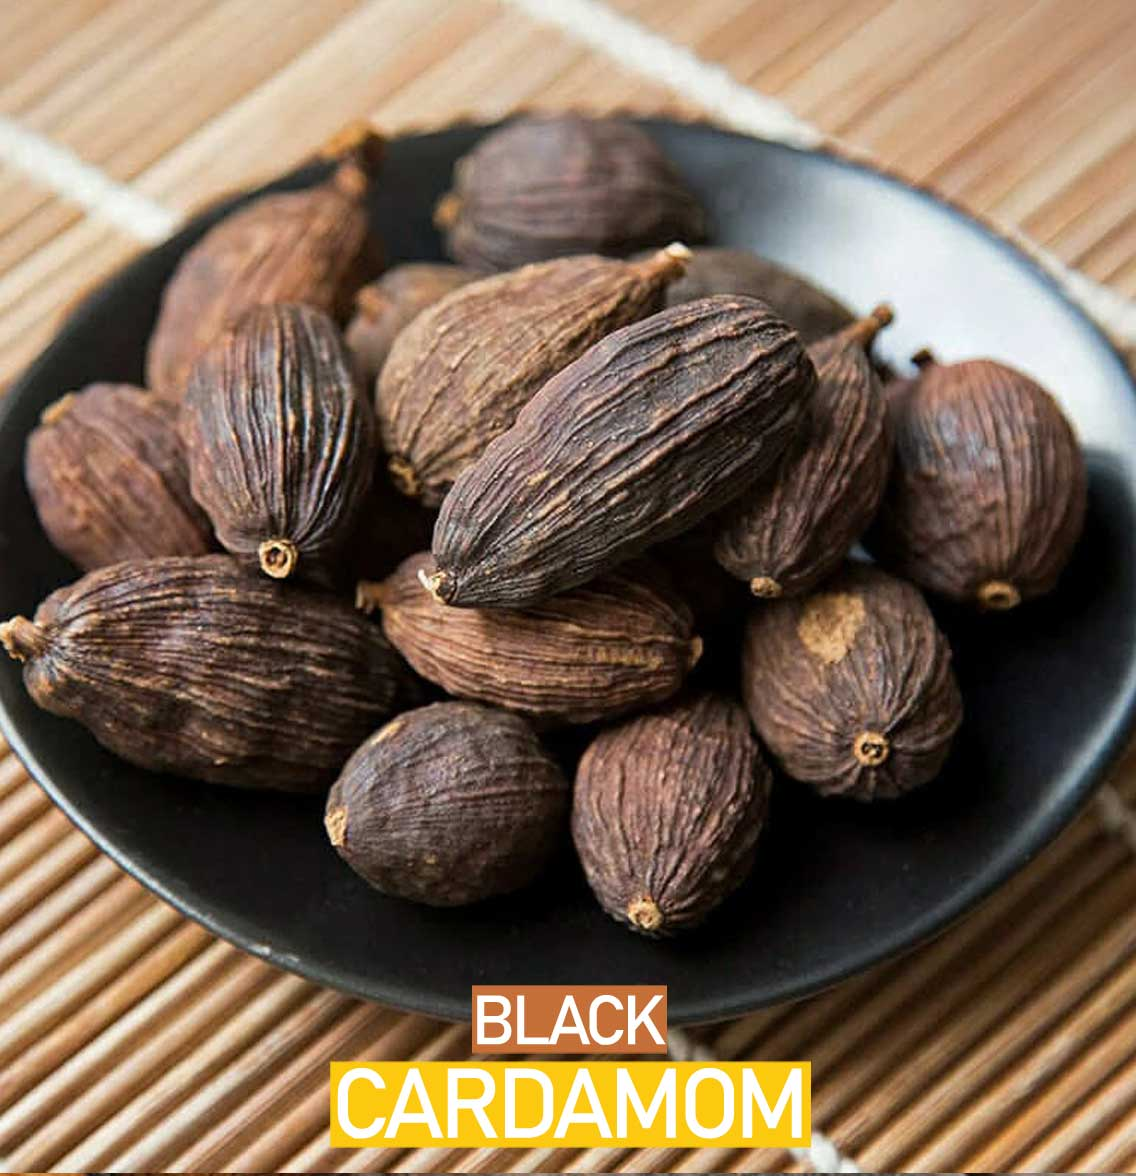 Health Benefits of Black Cardamom - You Never Knew About It